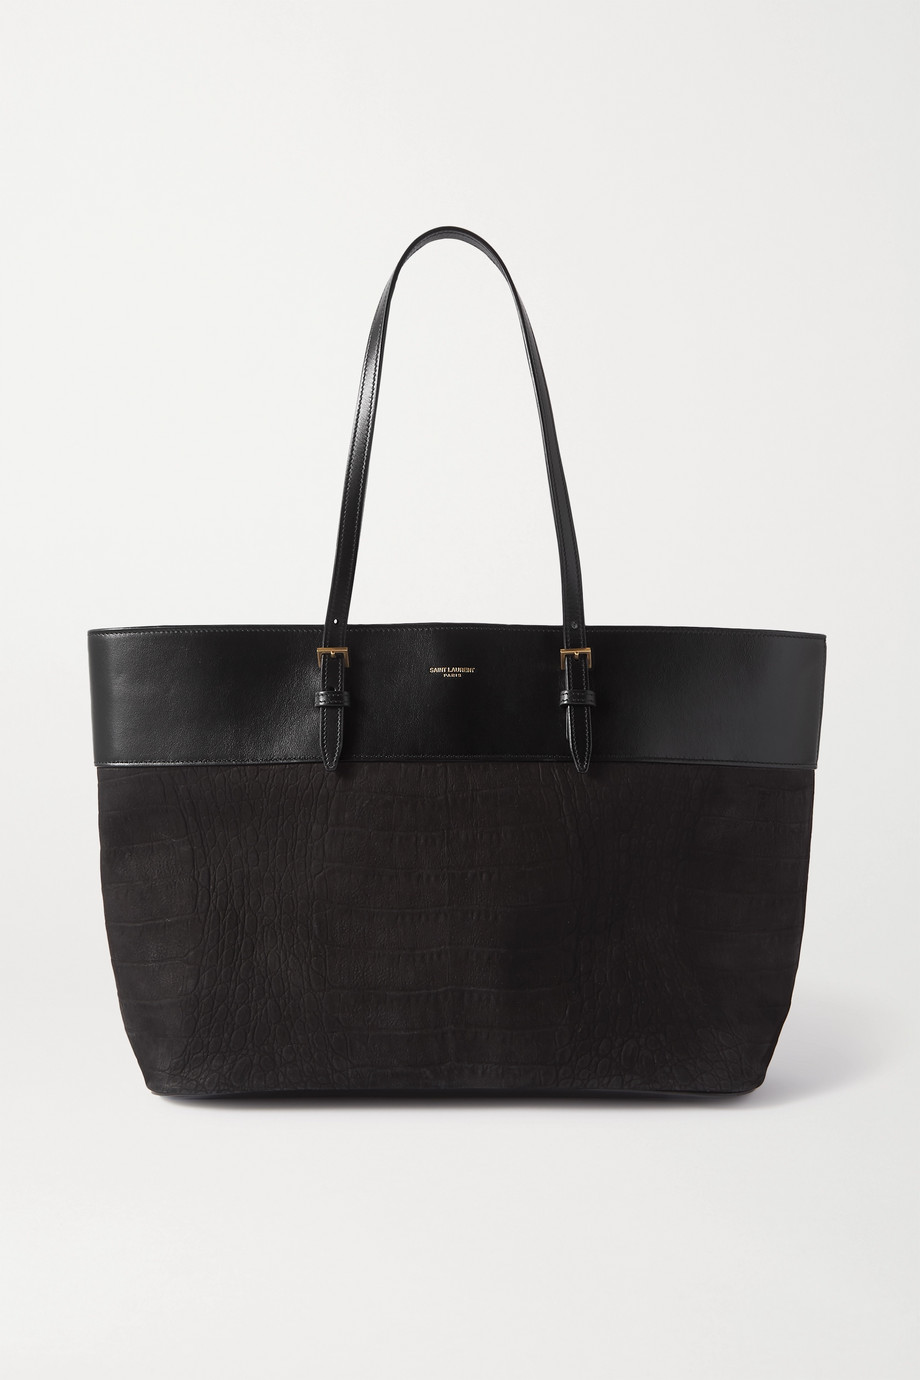 SAINT LAURENT Medium leather-trimmed croc-effect suede tote